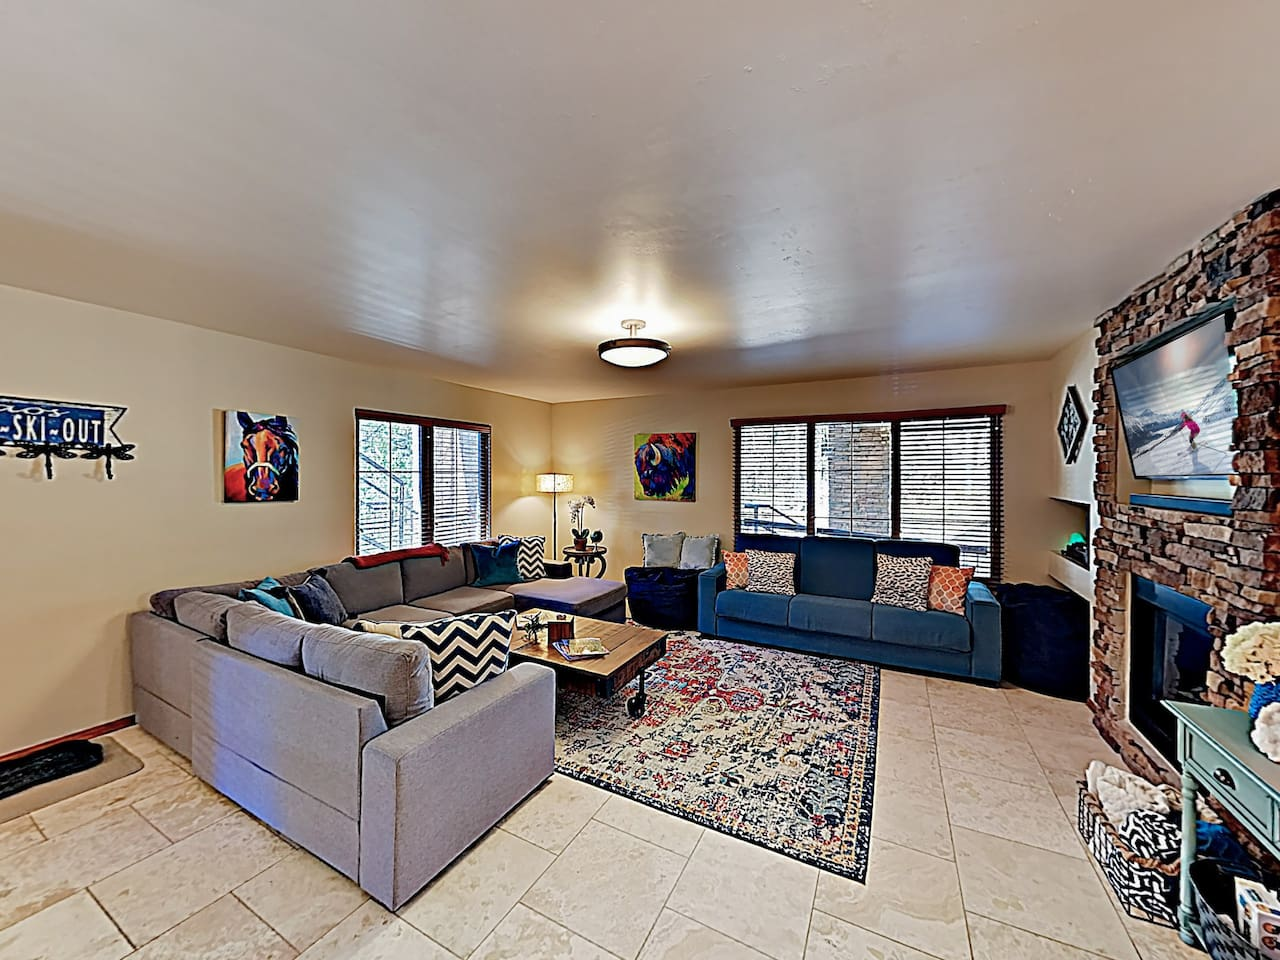 Welcome to Taos Ski Valley! This condo is professionally managed by TurnKey Vacation Rentals.